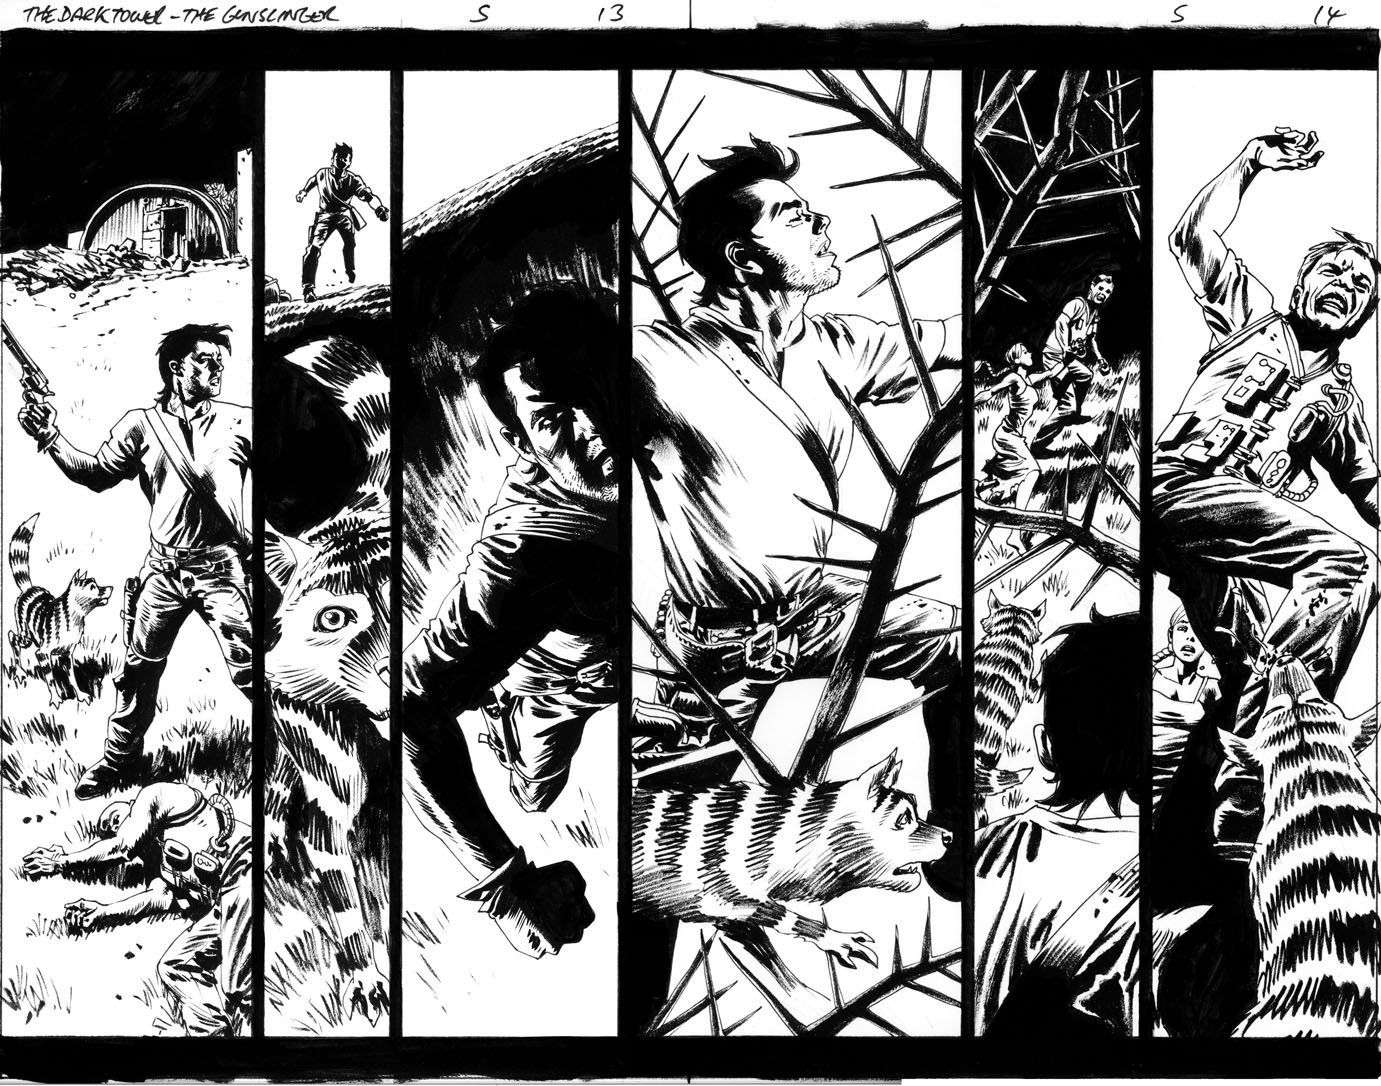 Comic Art For Sale from Splash Page Comic Art, Dark Tower The Gunslinger The Journey Begins Issue 05 Page 13 and 14 by Comic Artist(s) Sean Phillips